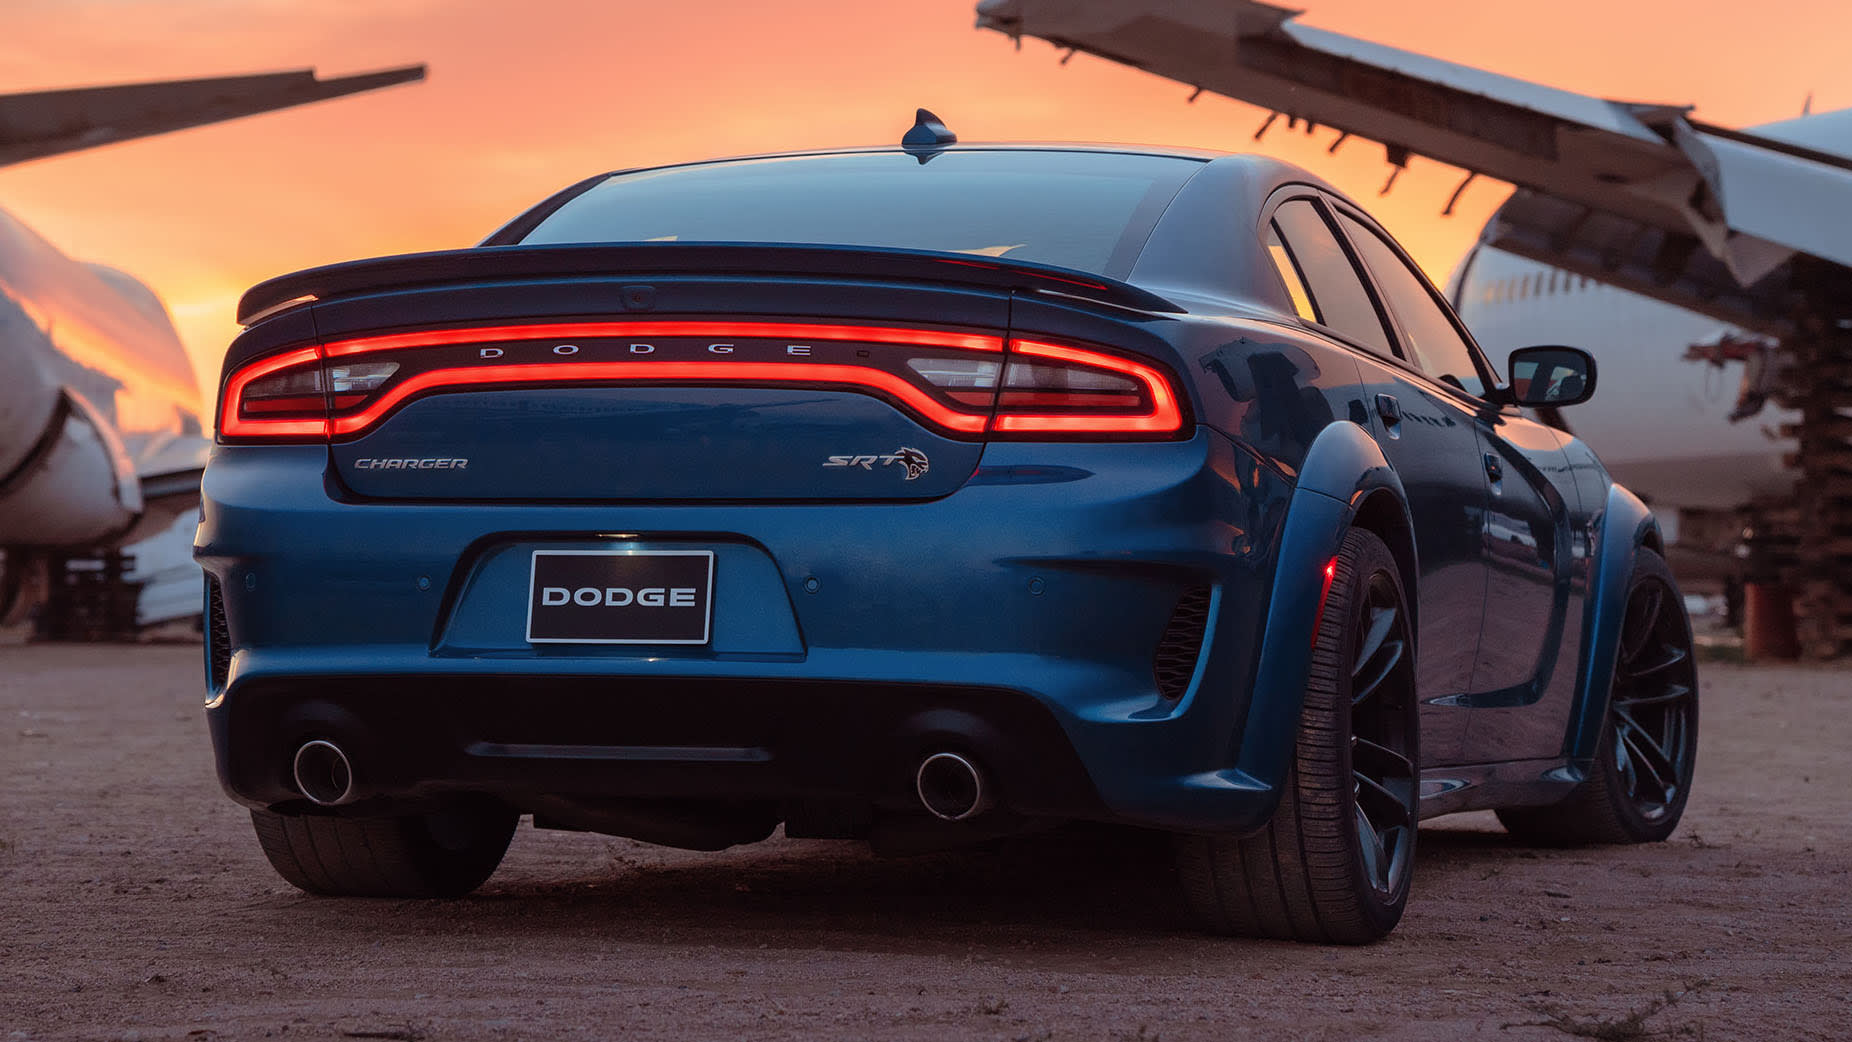 2020 Dodge Charger Widebody unveiled   CarAdvice